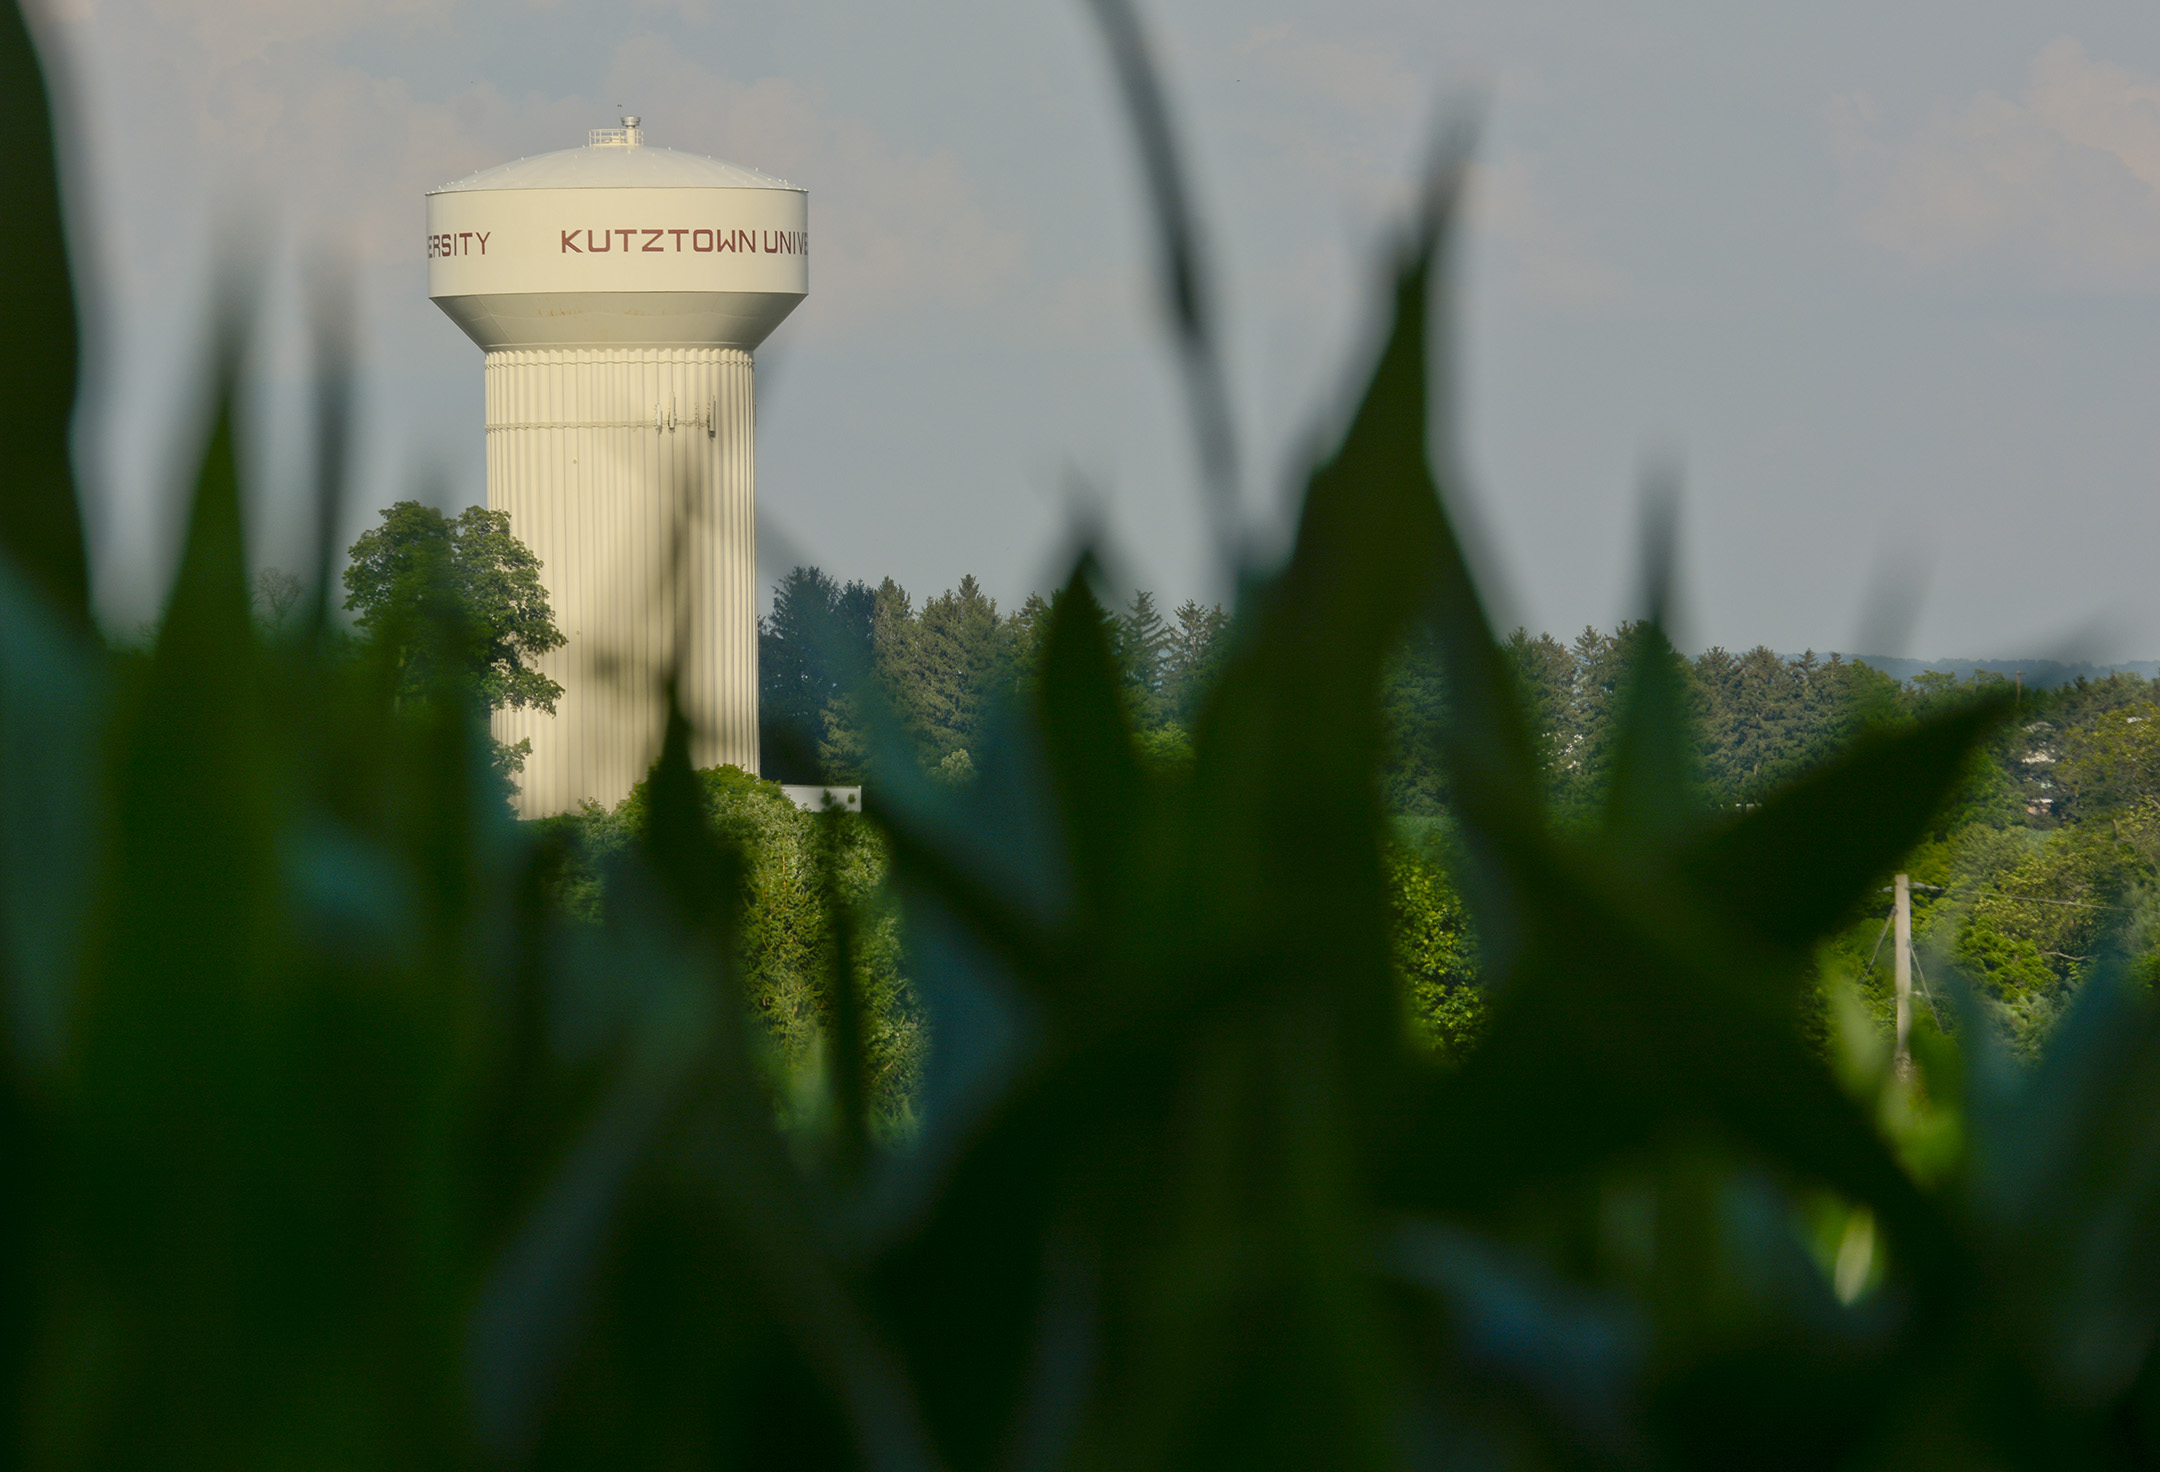 The Kutztown University water tower is visible from one of the Angstadt's cornfields.